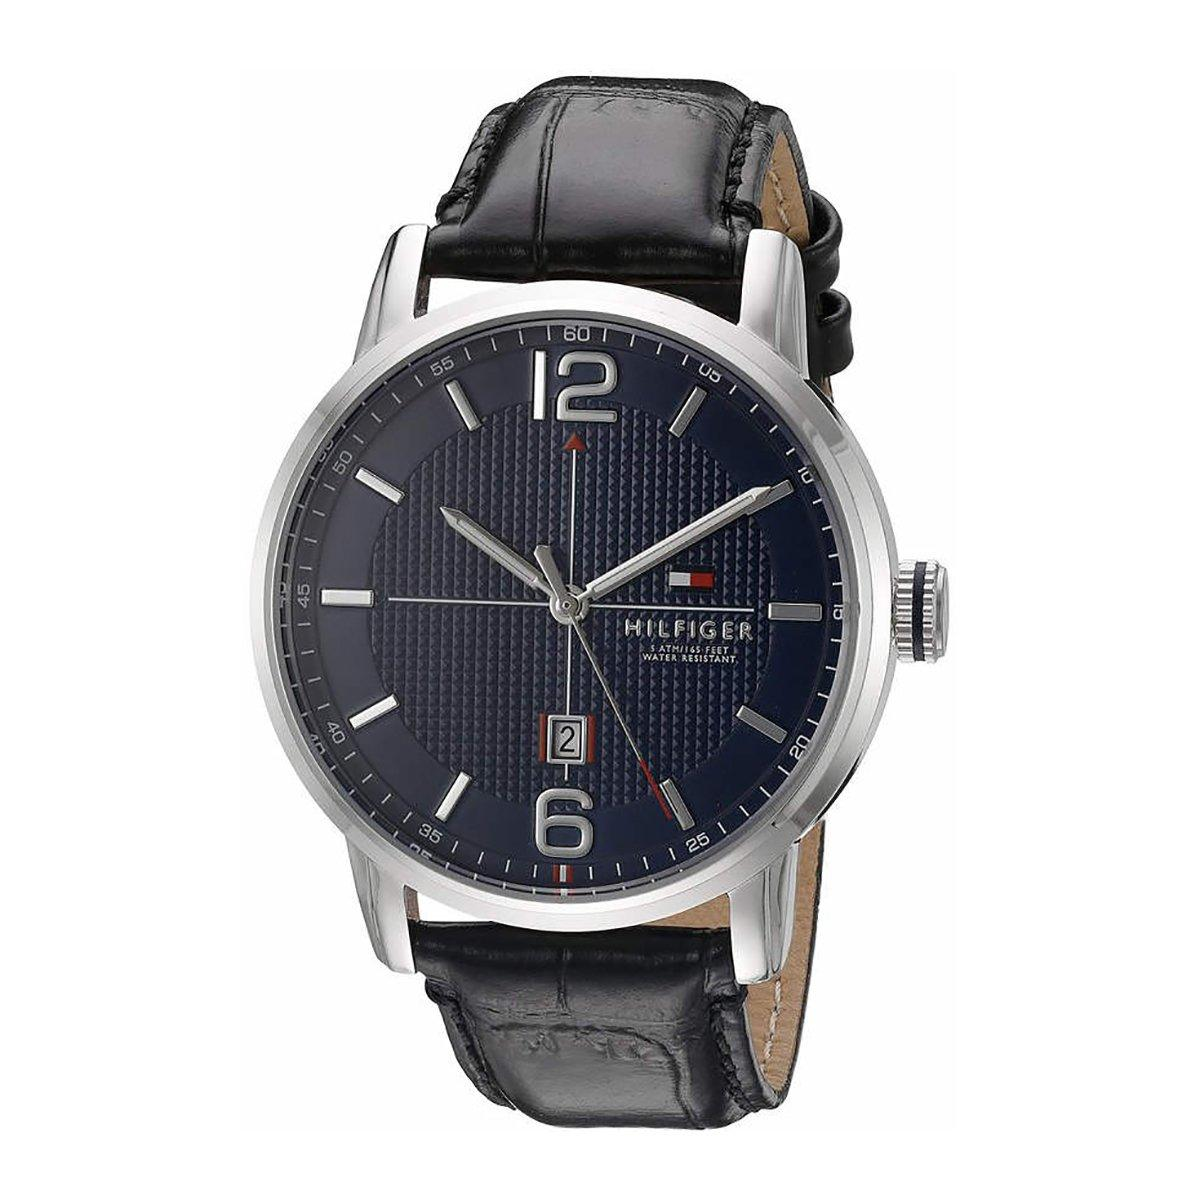 For Sale Tommy Hilfiger Watch George Black Stainless Steel Case Leather Strap Mens 1791216